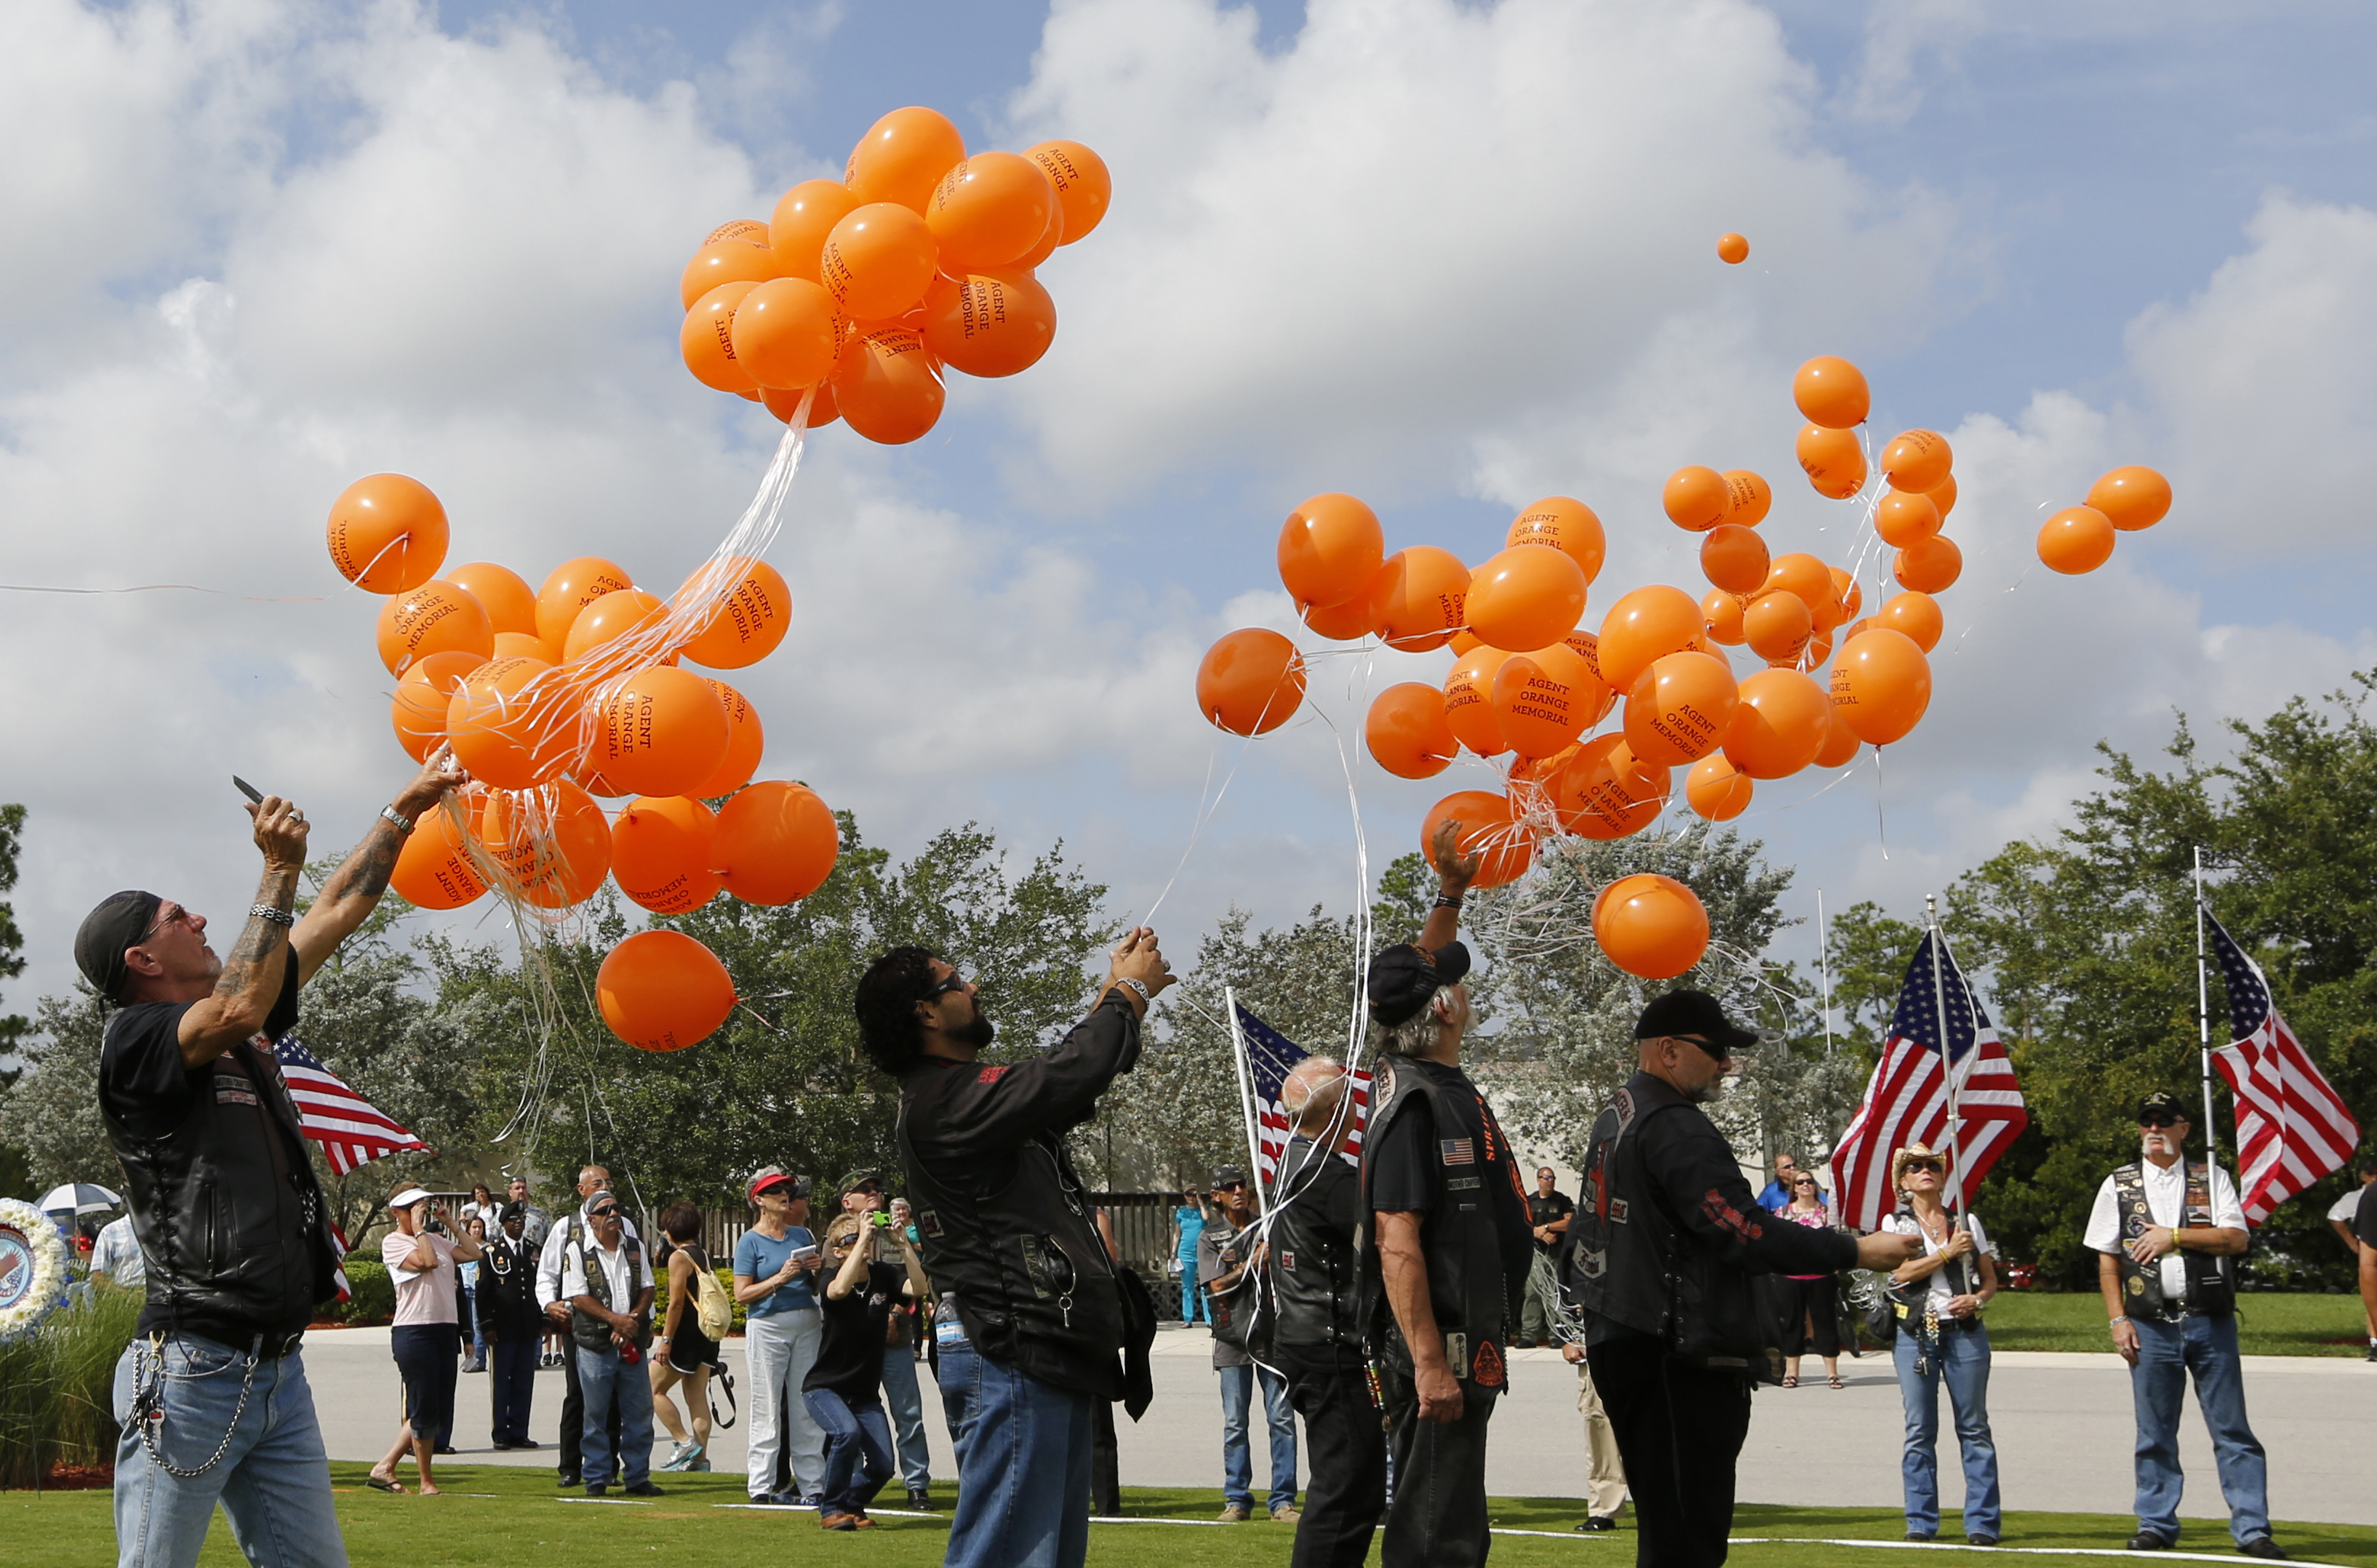 Members of a veteran's group release balloons for the Agent Orange Memorial for those affected by the chemical agent in Vietnam at a Memorial Day Ceremony at the South Florida National Cemetery in Lake Worth, Florida May 27, 2013. The severe, lasting health effects of Agent Orange continue to effect veterans and citizens in both the U.S. and Vietnam, including Air Force reservists who worked on planes in the Vietnam-era. Photo by Joe Skipper/Reuters